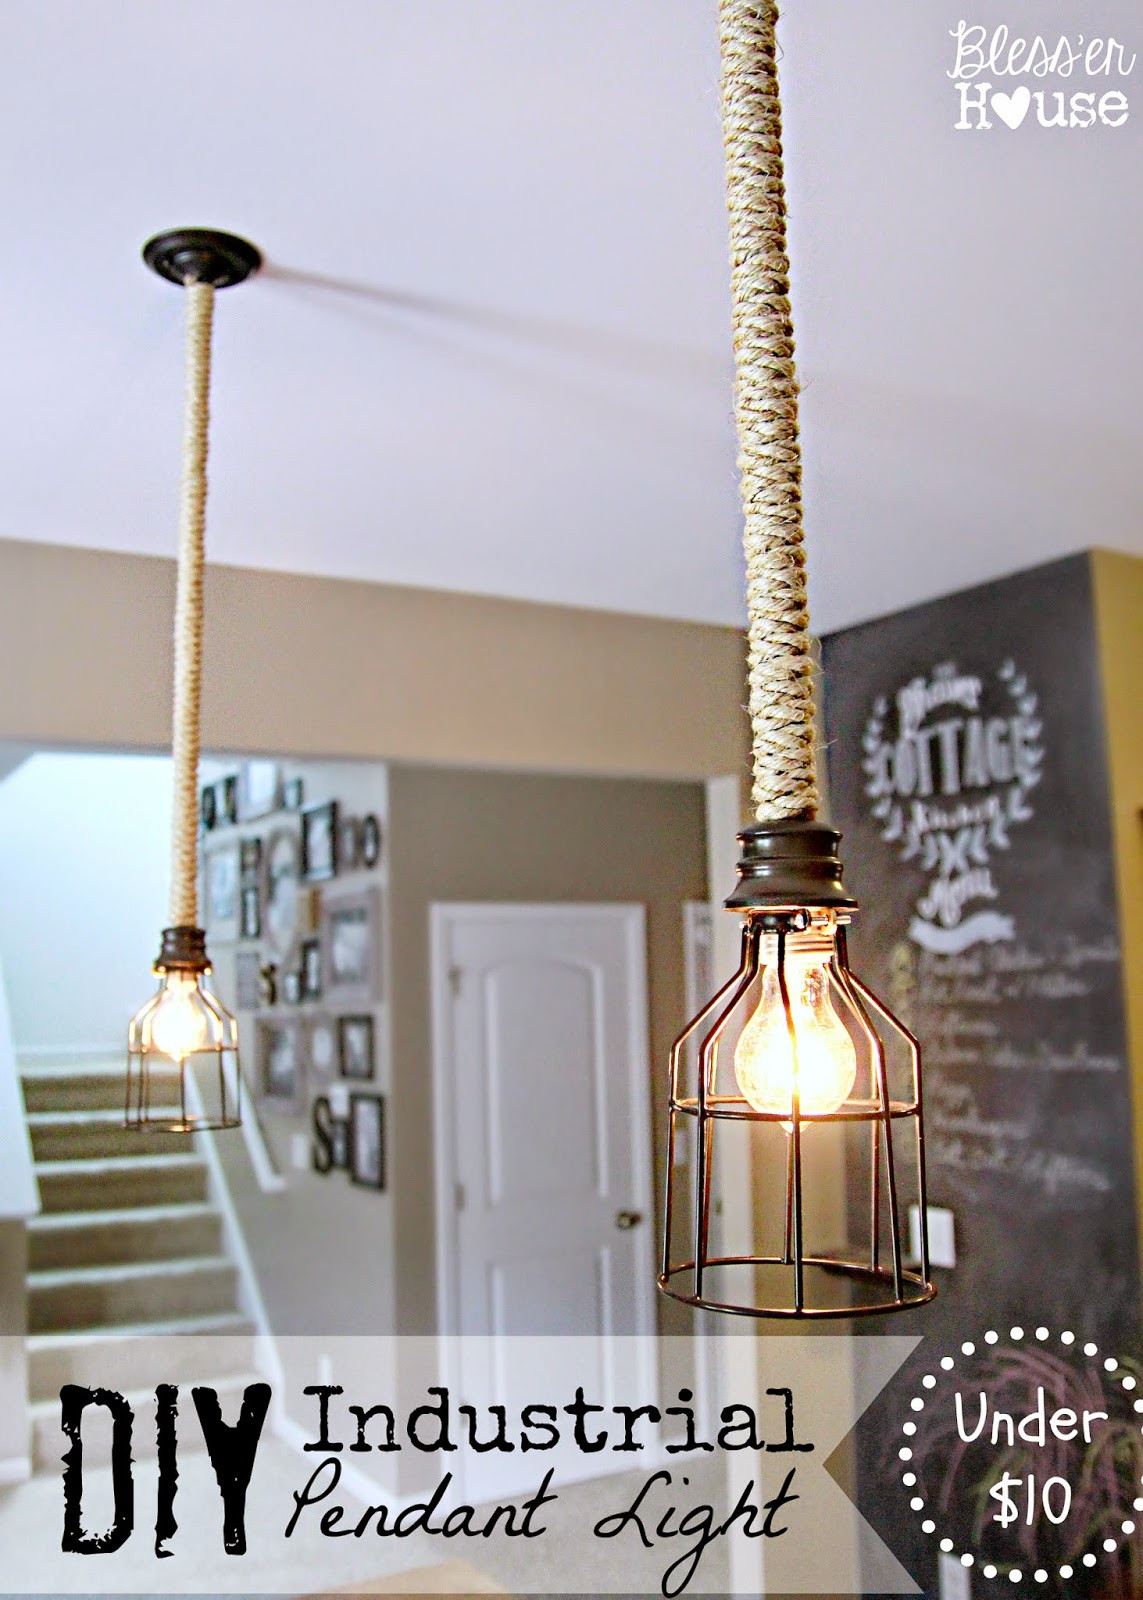 Best ideas about DIY Hanging Lamp . Save or Pin 5 DIY Industrial Light Fixtures for Under $25 Bless er House Now.